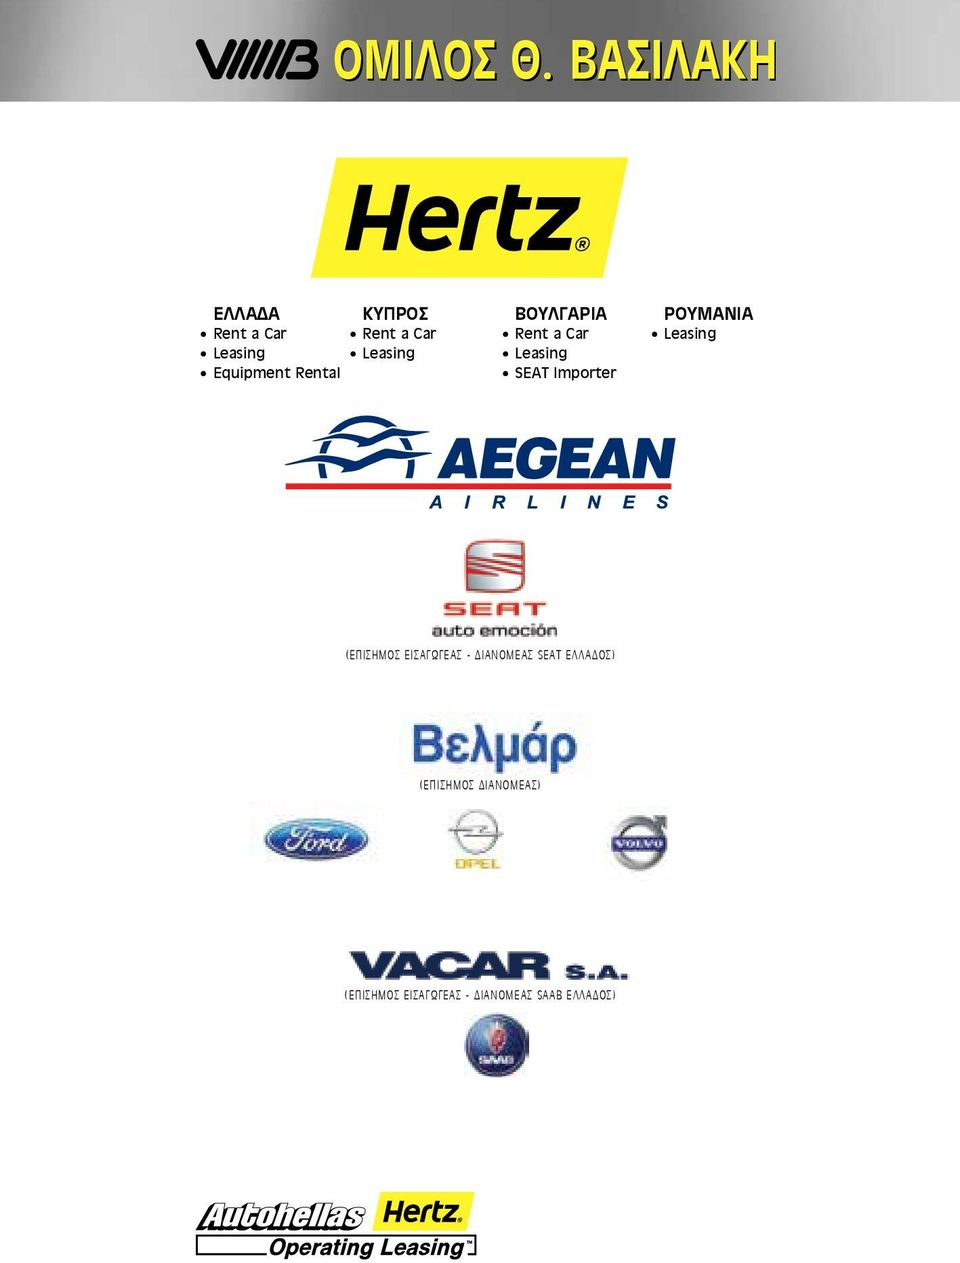 Equipment Rental ΒΟΥΛΓΑΡΙΑ Rent a Car Leasing SEAT Importer